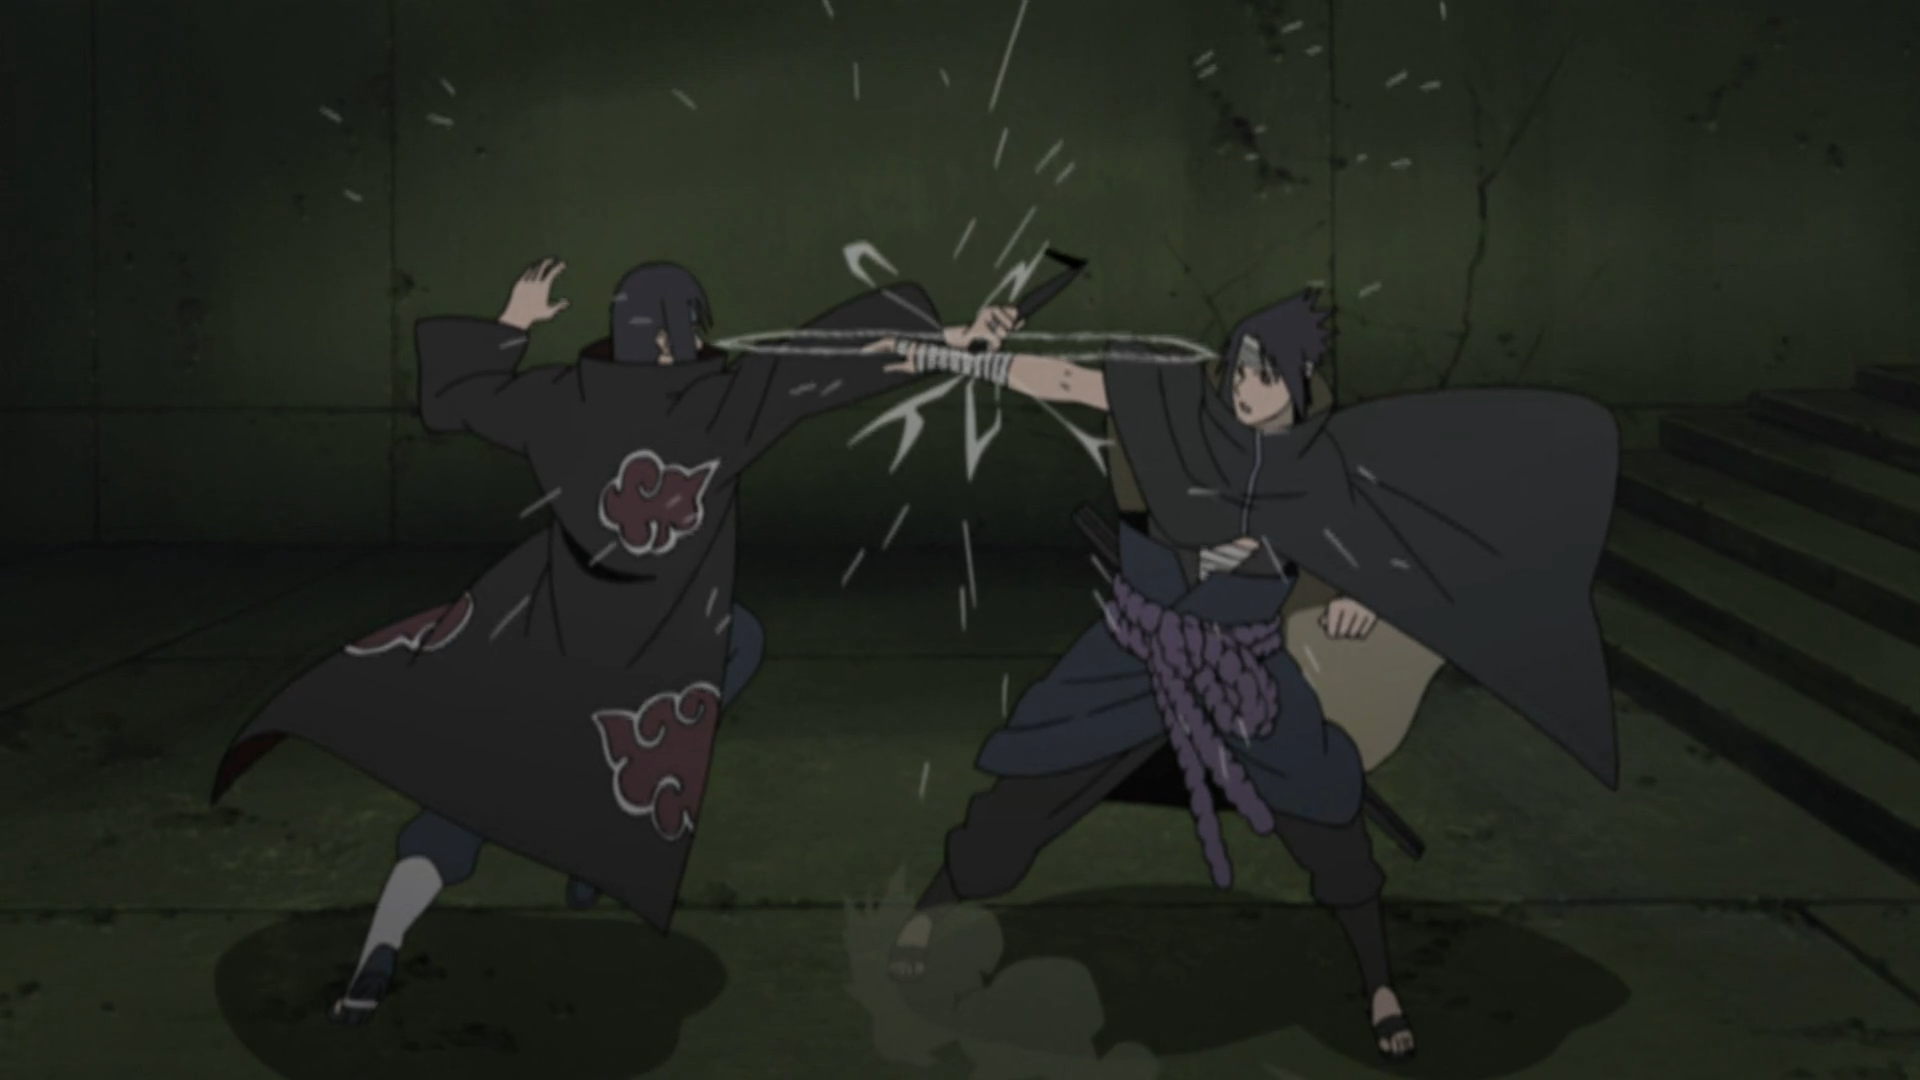 5 Naruto: Shippuden Battles You'll Never Forget